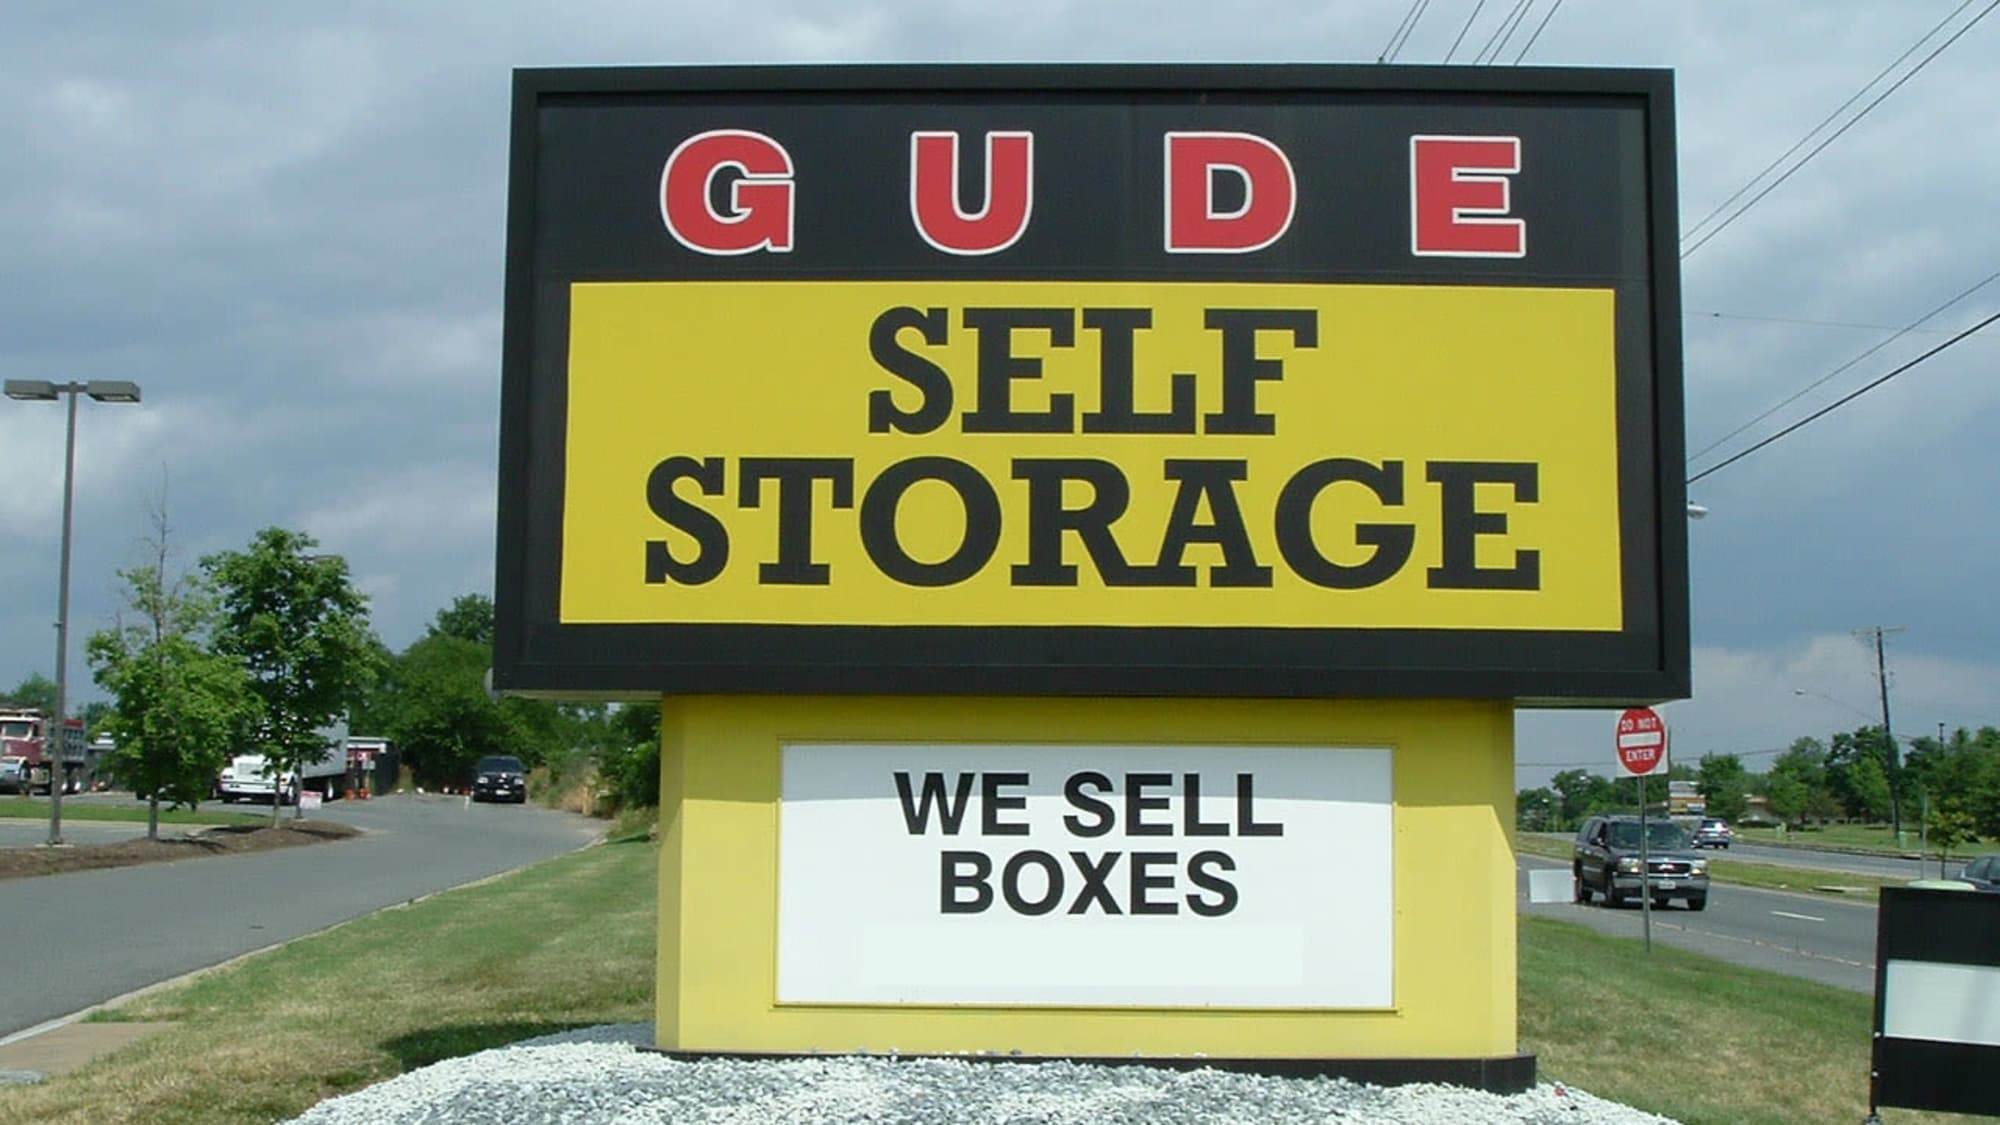 Welcome sign at Gude Self Storage in Rockville, Maryland